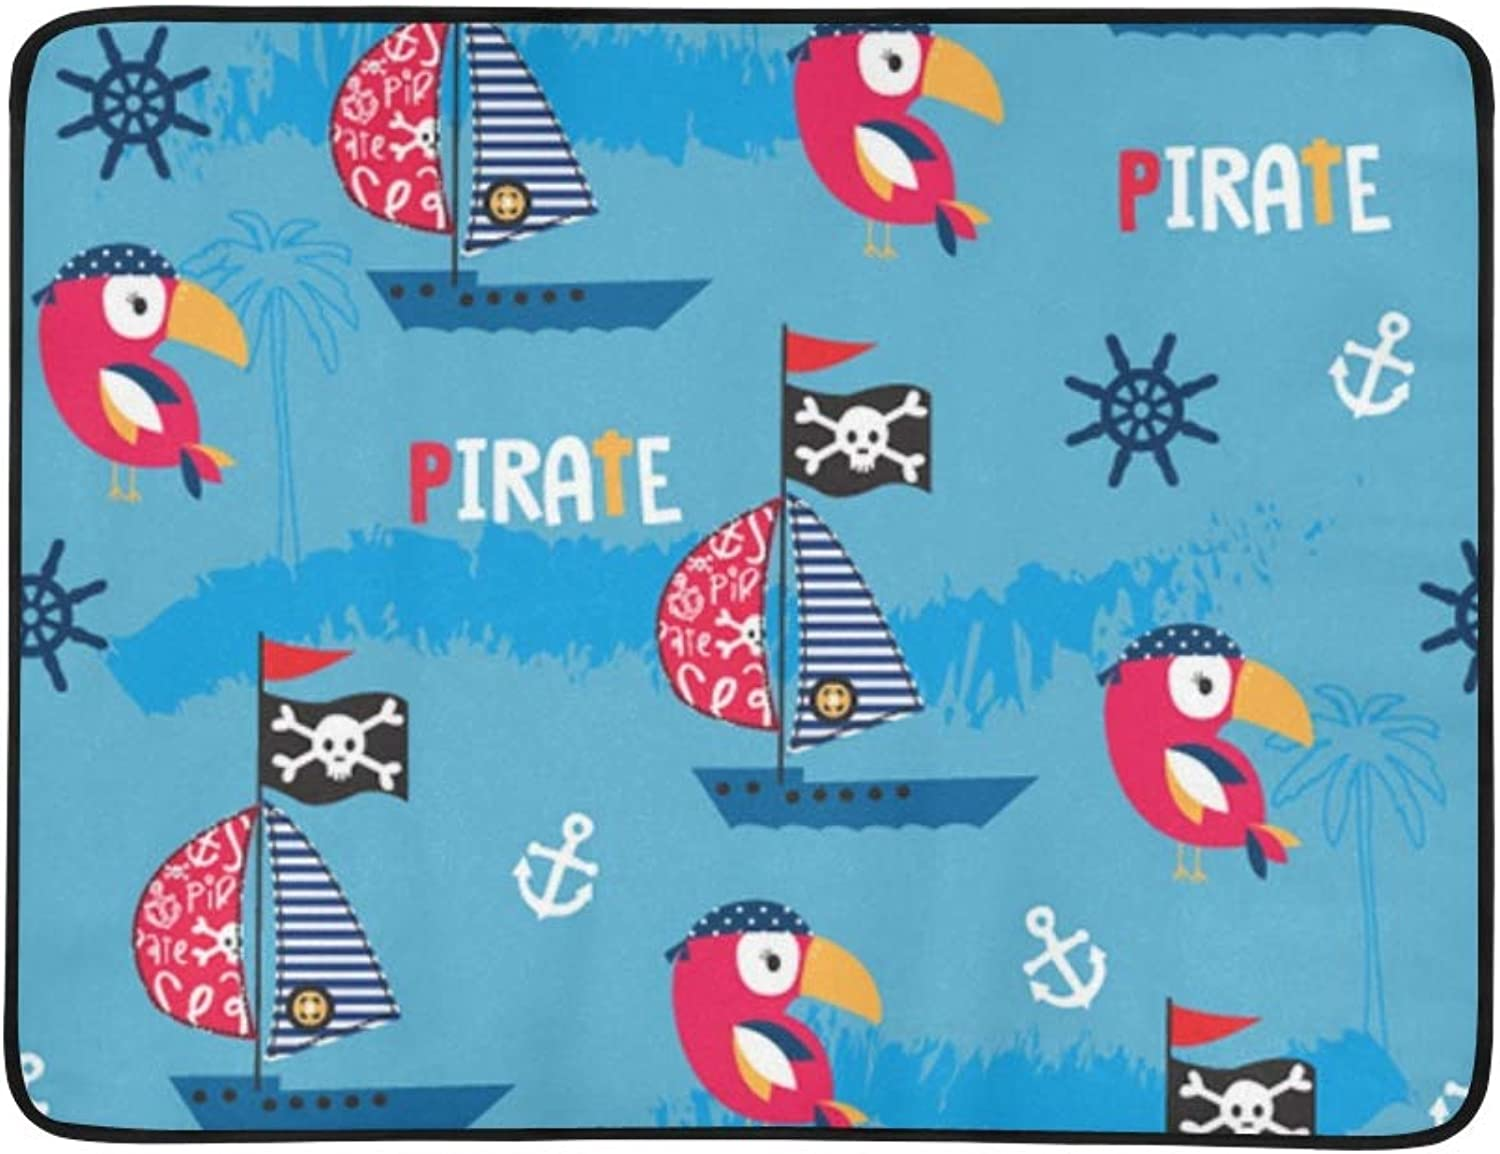 Bird Pirate Ship Portable and Foldable Blanket Mat 60x78 Inch Handy Mat for Camping Picnic Beach Indoor Outdoor Travel